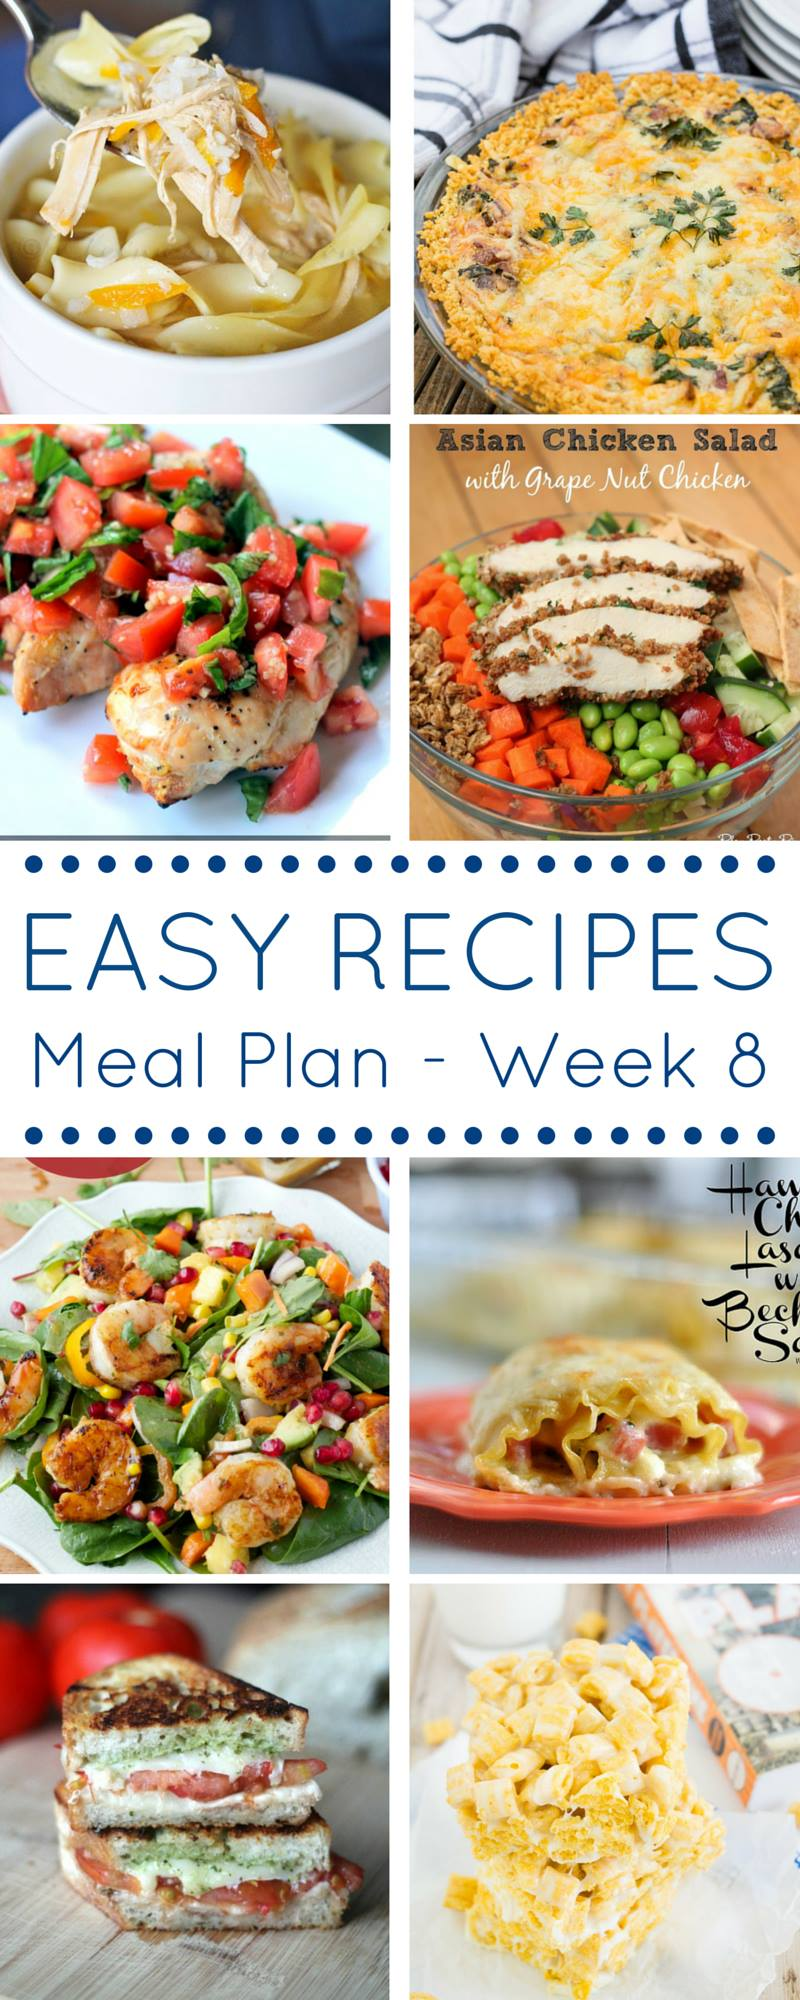 Easy recipes Meal Plan provides SEVEN delicious dinners as well as one amazing dessert! Come check out these recipes for major meal planning inspiration!